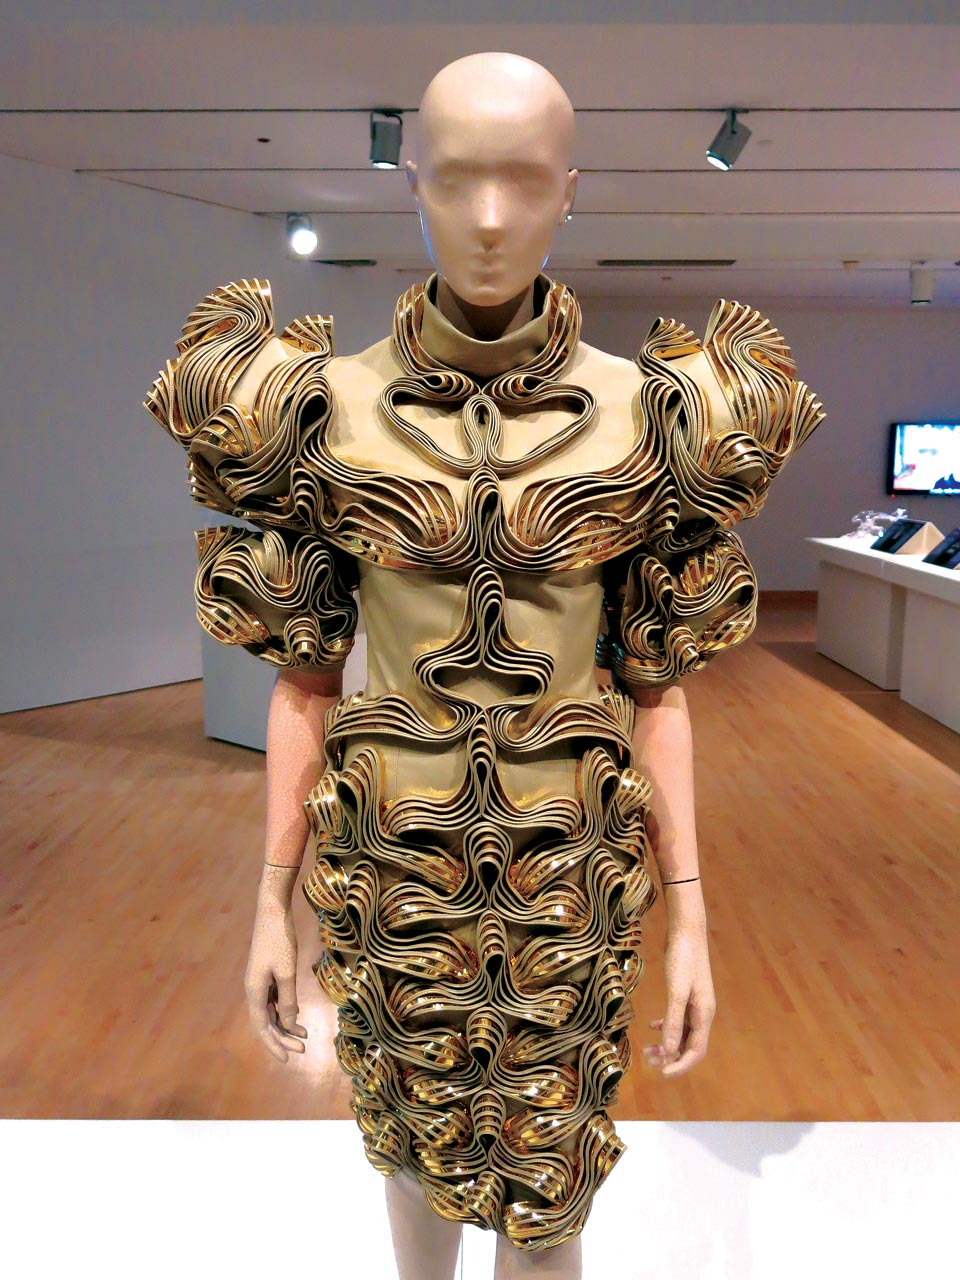 RADIATION INVASION DRESS from 2009 collection of faux leather, gold foil, cotton, and tulle.  Photograph by Patrick R. Benesh-Liu.